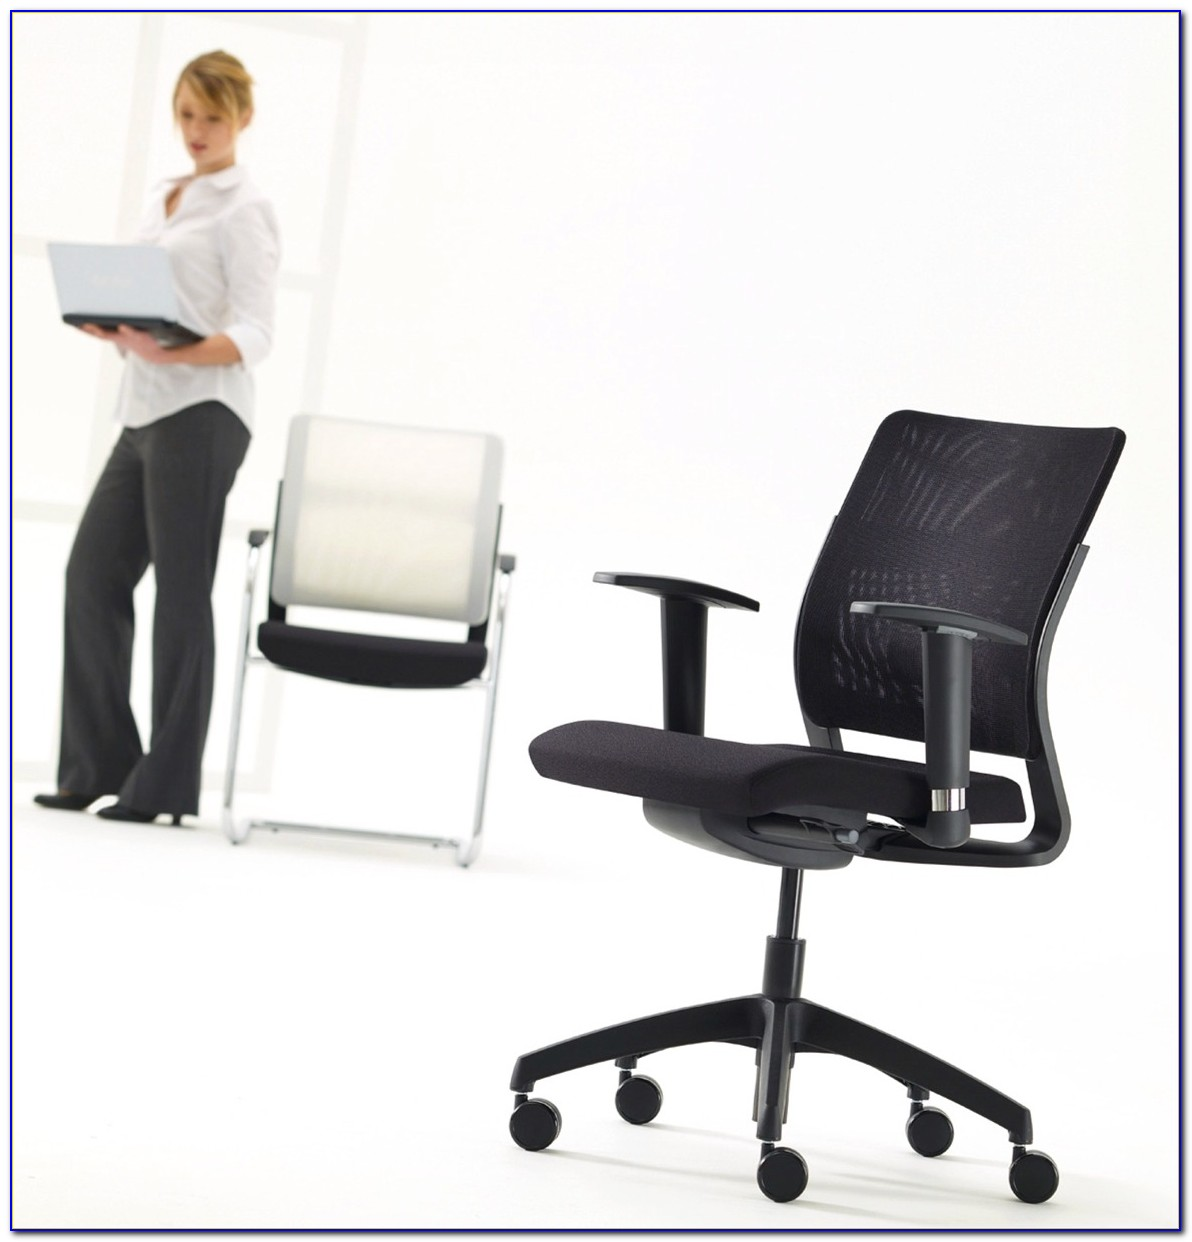 Chairs For Back Pain Relief